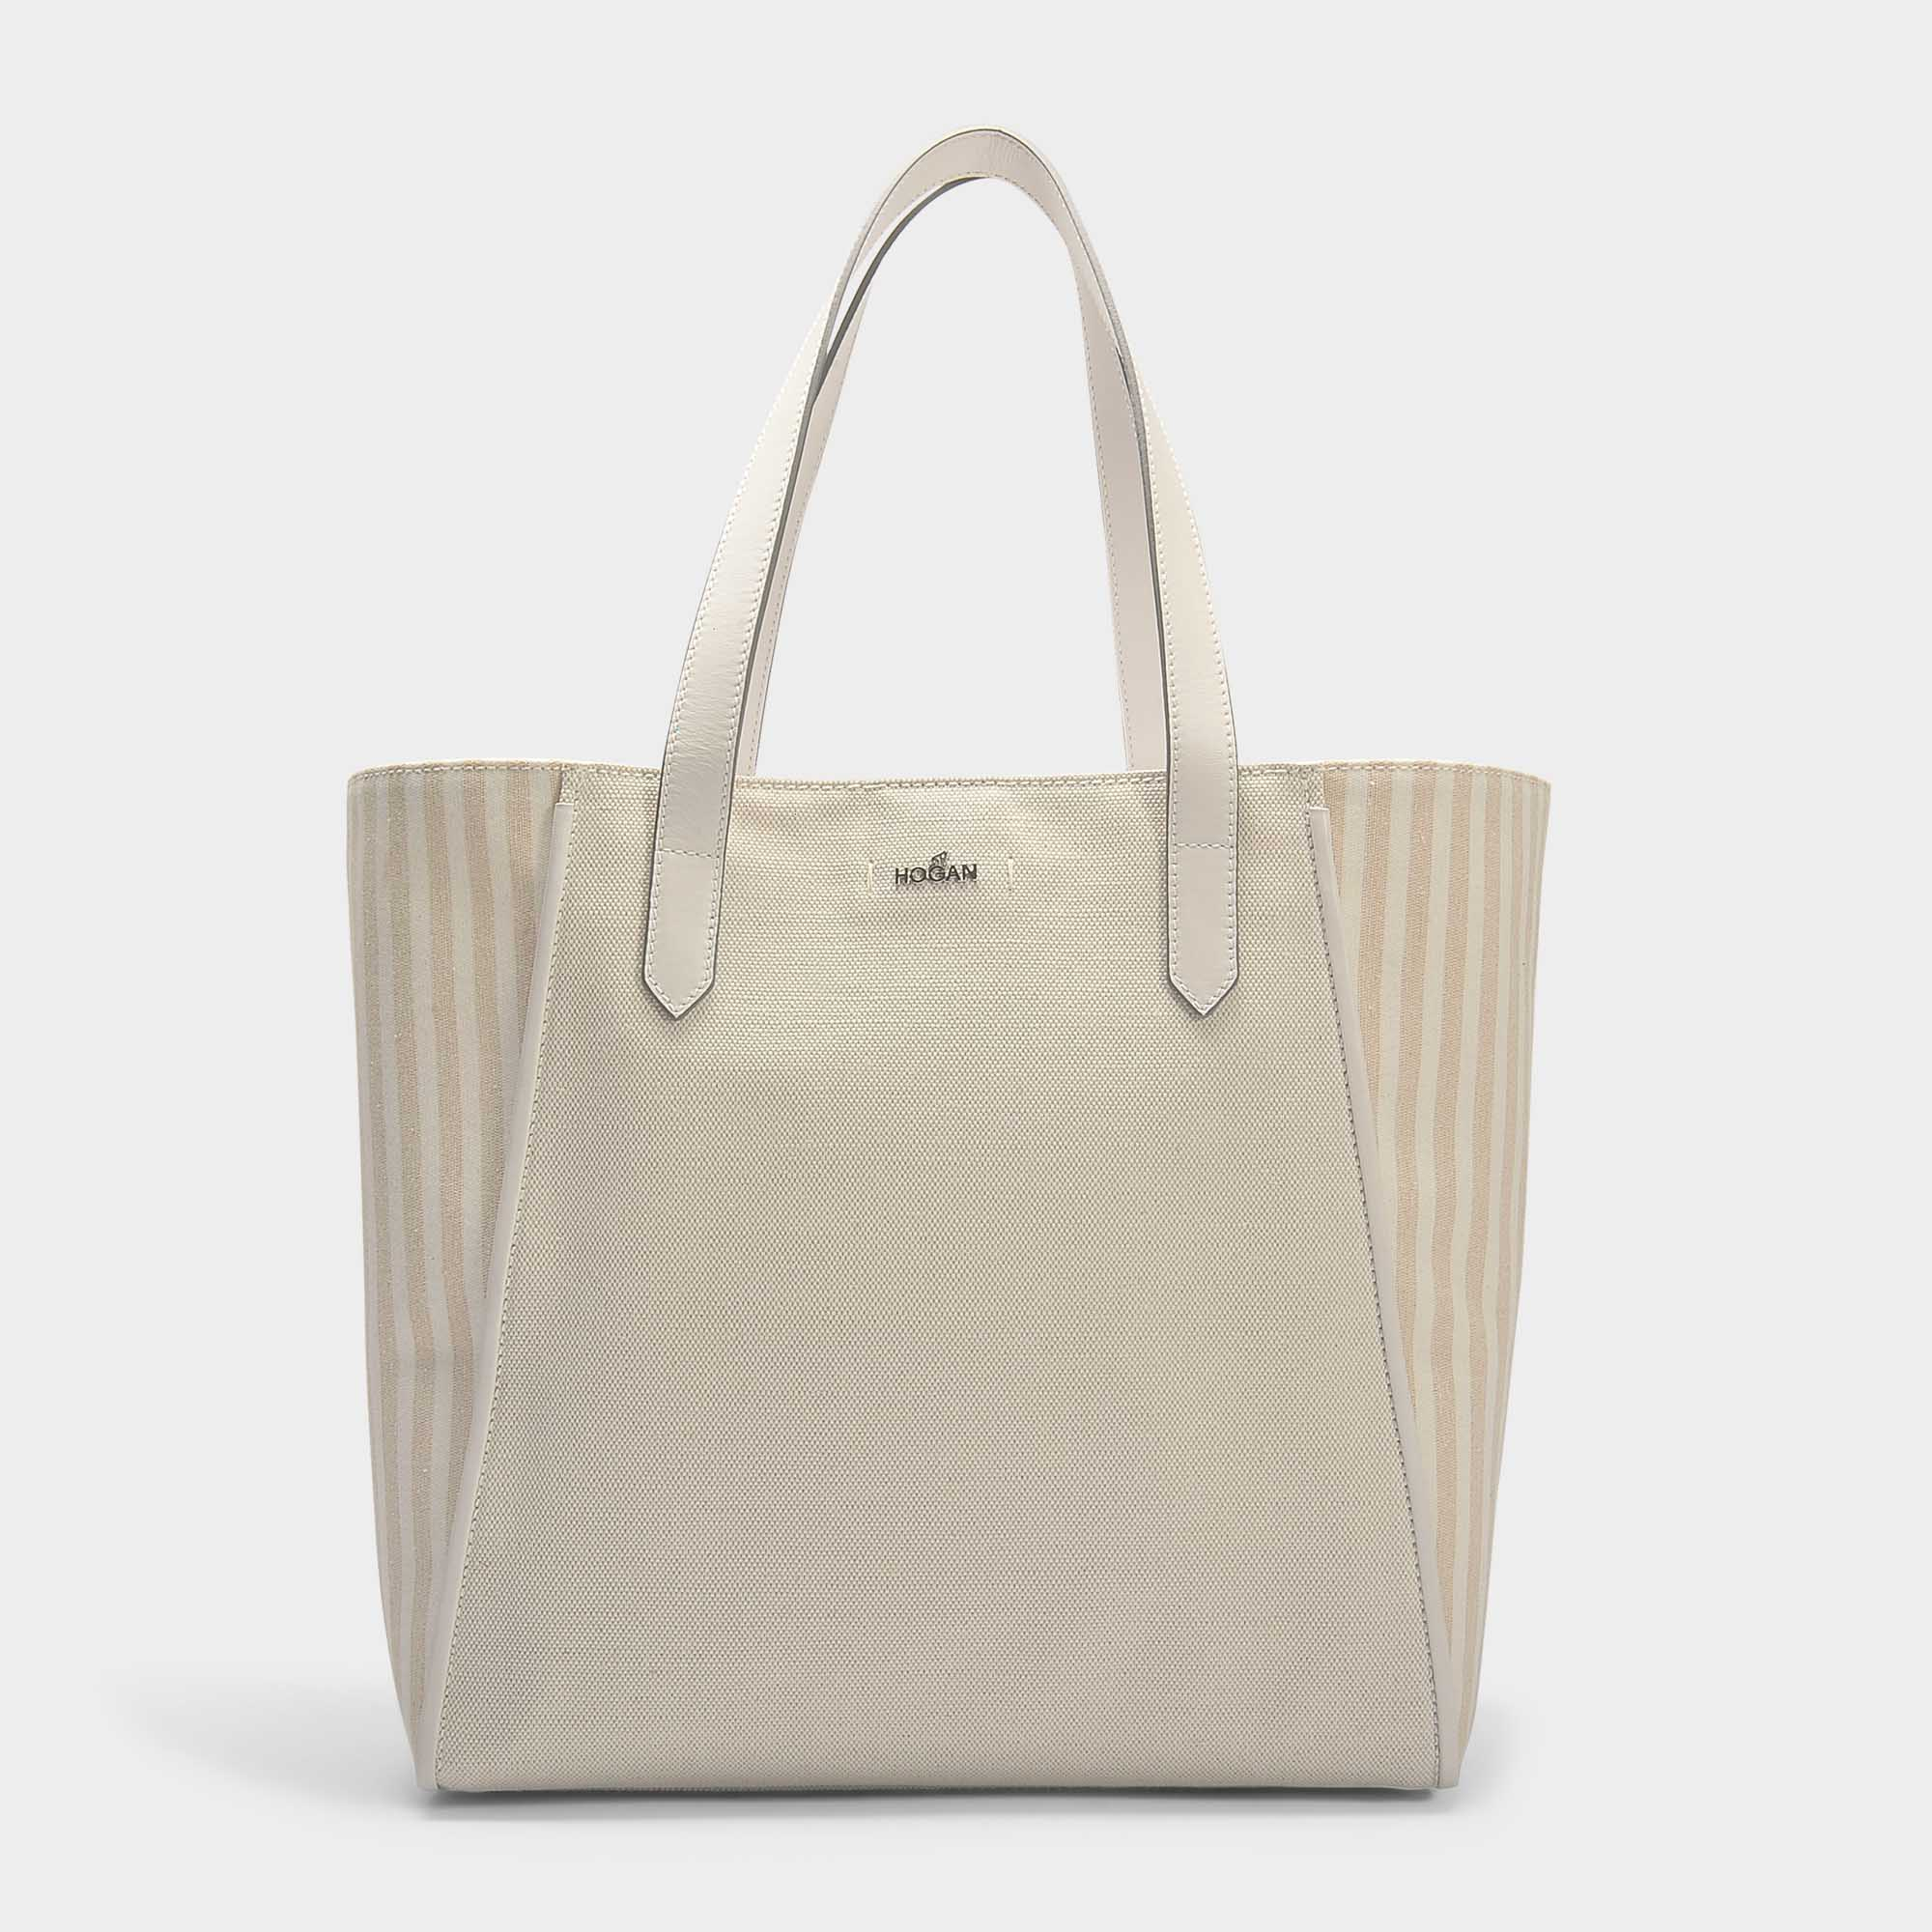 TOTE BAG IN WHITE LIGHT CANVAS